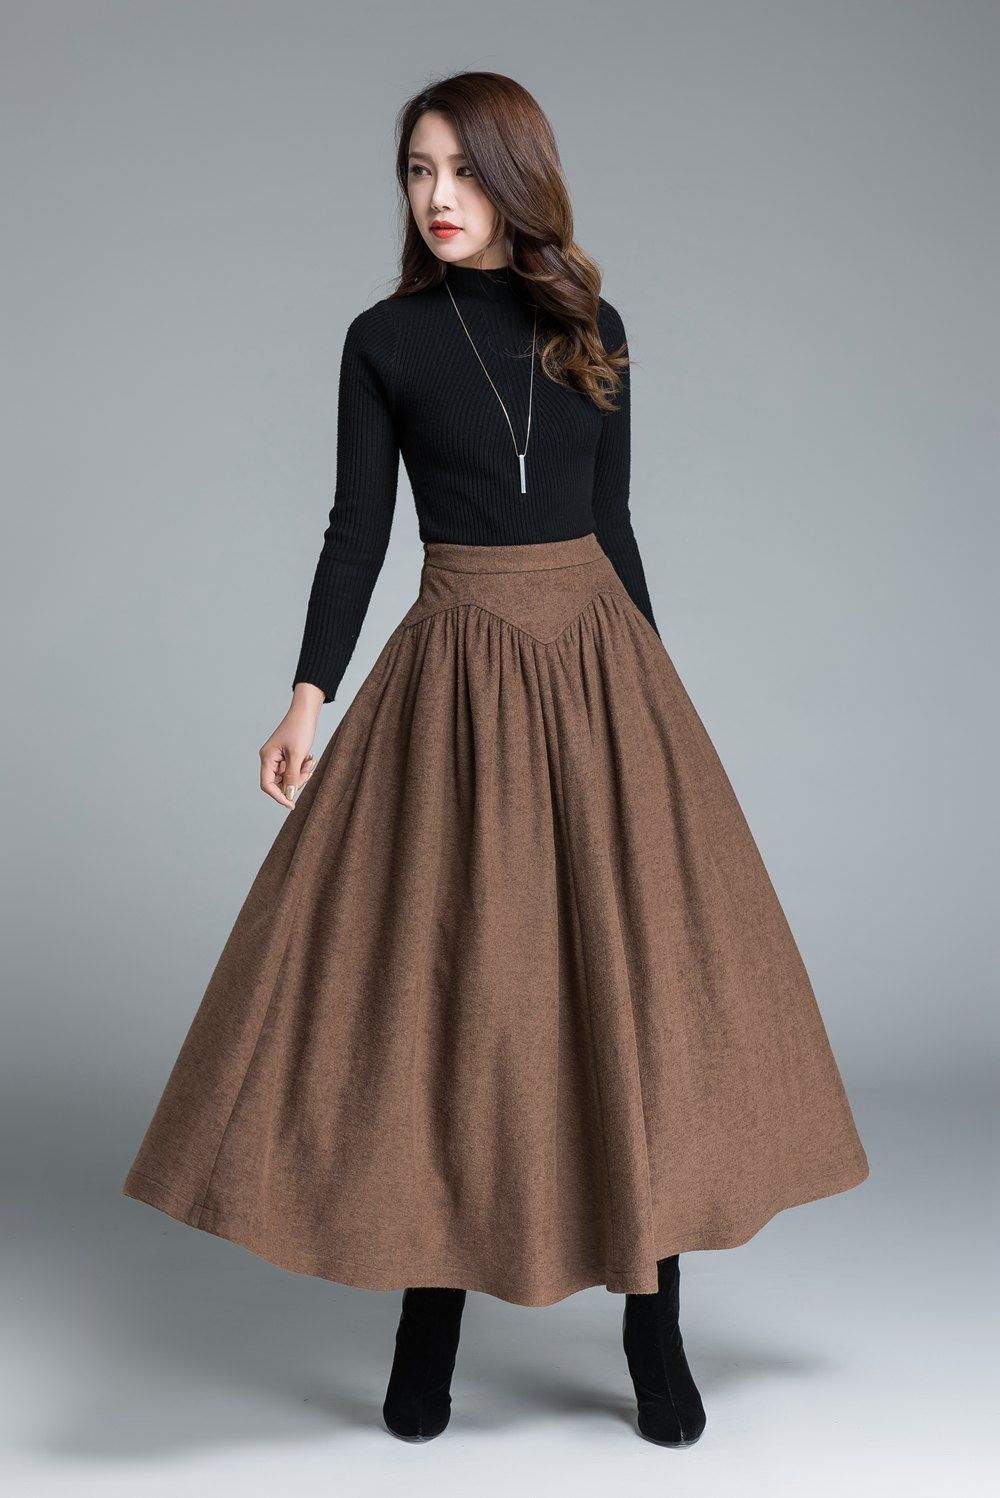 Waist High skirts long pictures new photo